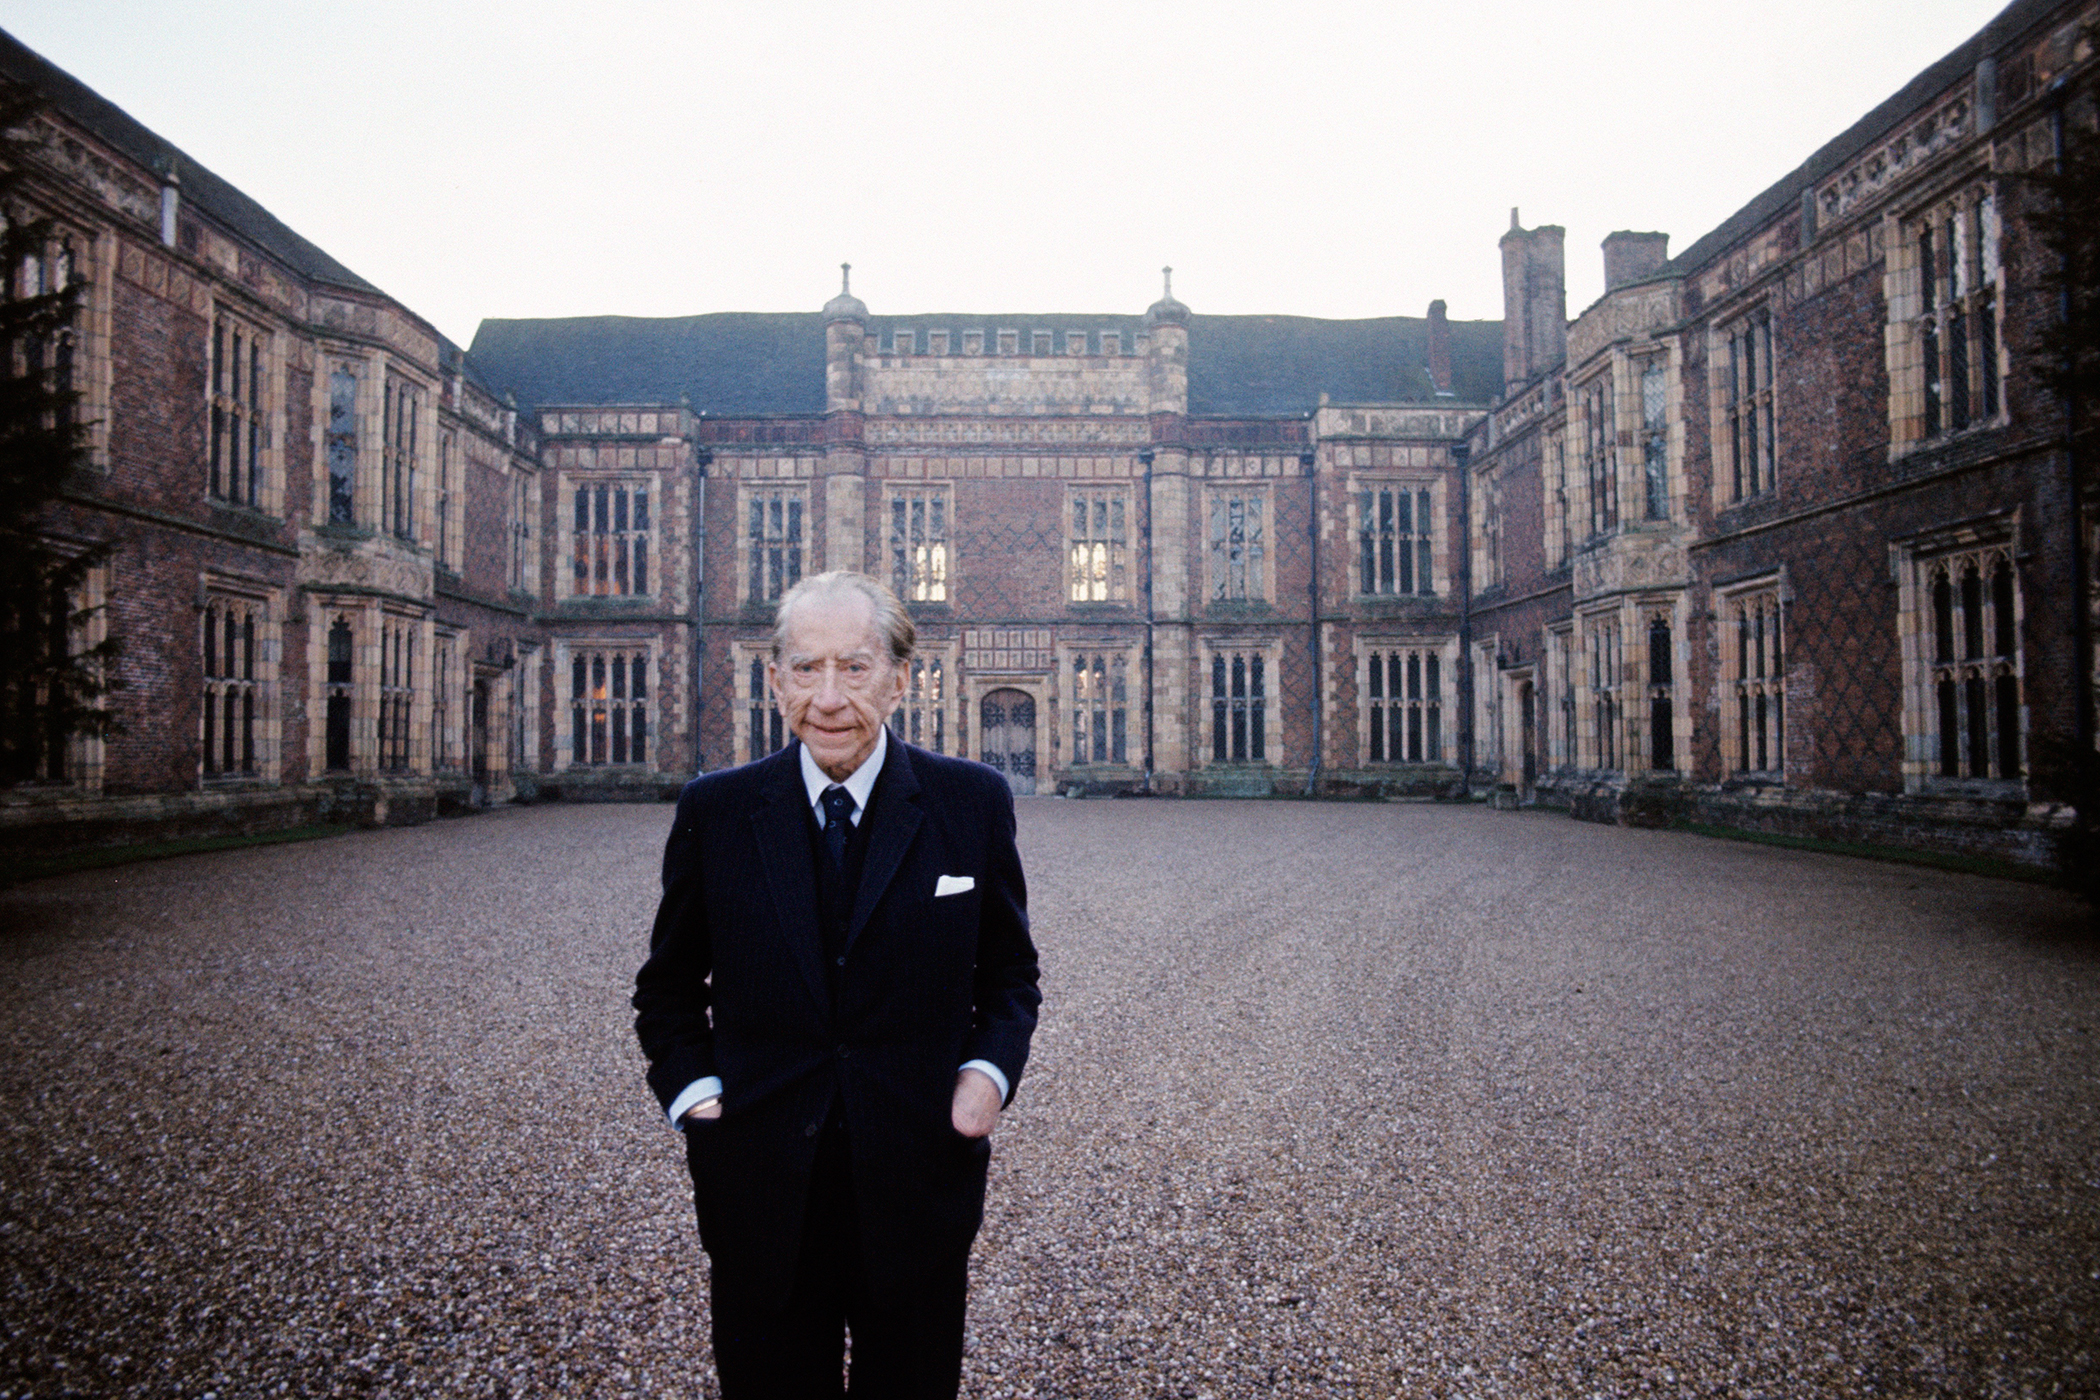 Anglo-American industrialist and billionaire Jean Paul Getty in his Sutton Place manor house, 3 miles from Guildford, in Surrey, England, January 1973.